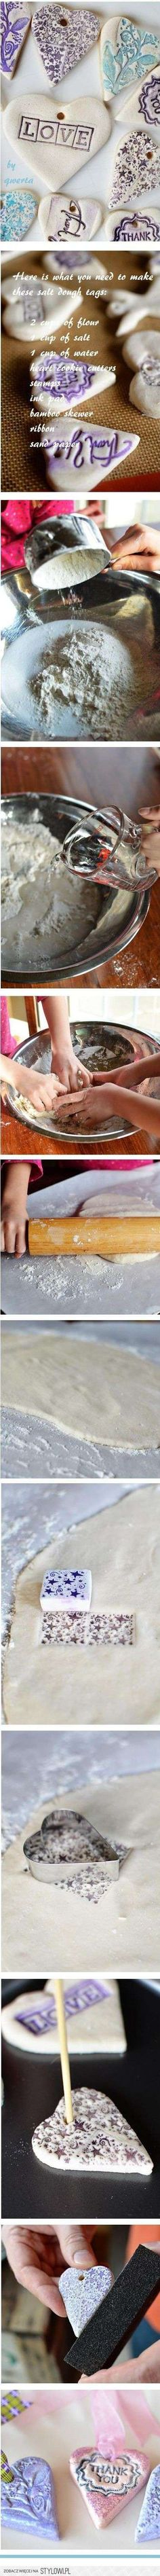 Stamped salt dough.